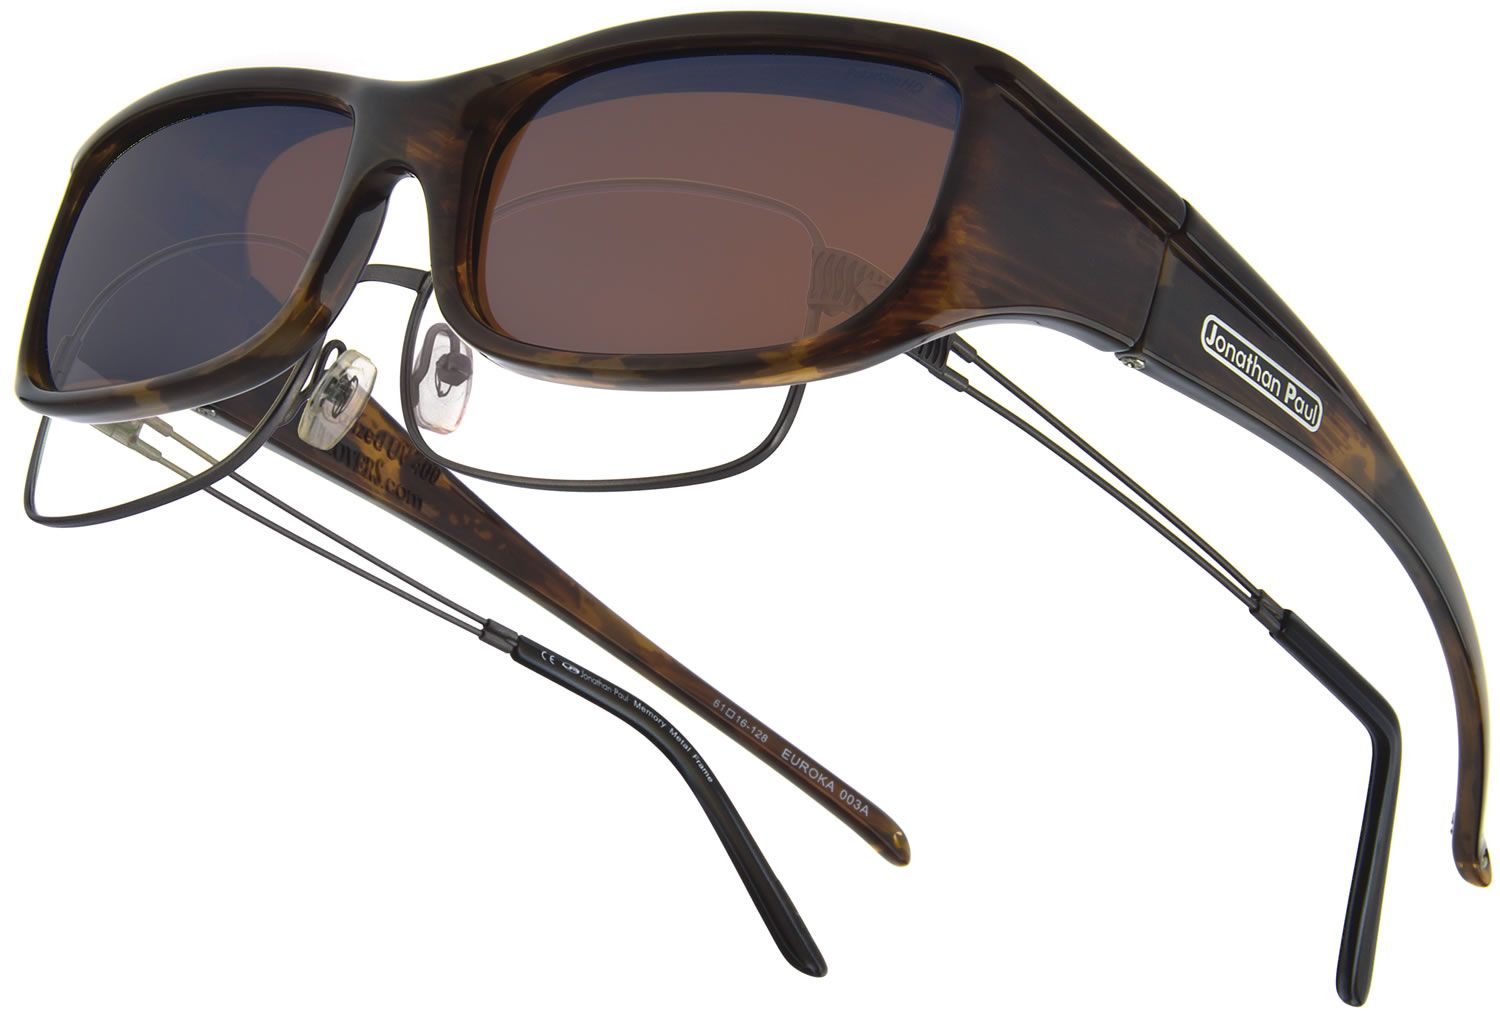 c3c9d4c8f0 Euroka Brown Marble (Polarvue® Amber) fitover sunglasses by Jonathan Paul®  are just as functional but way more fashionable than those bulky generic  brands.